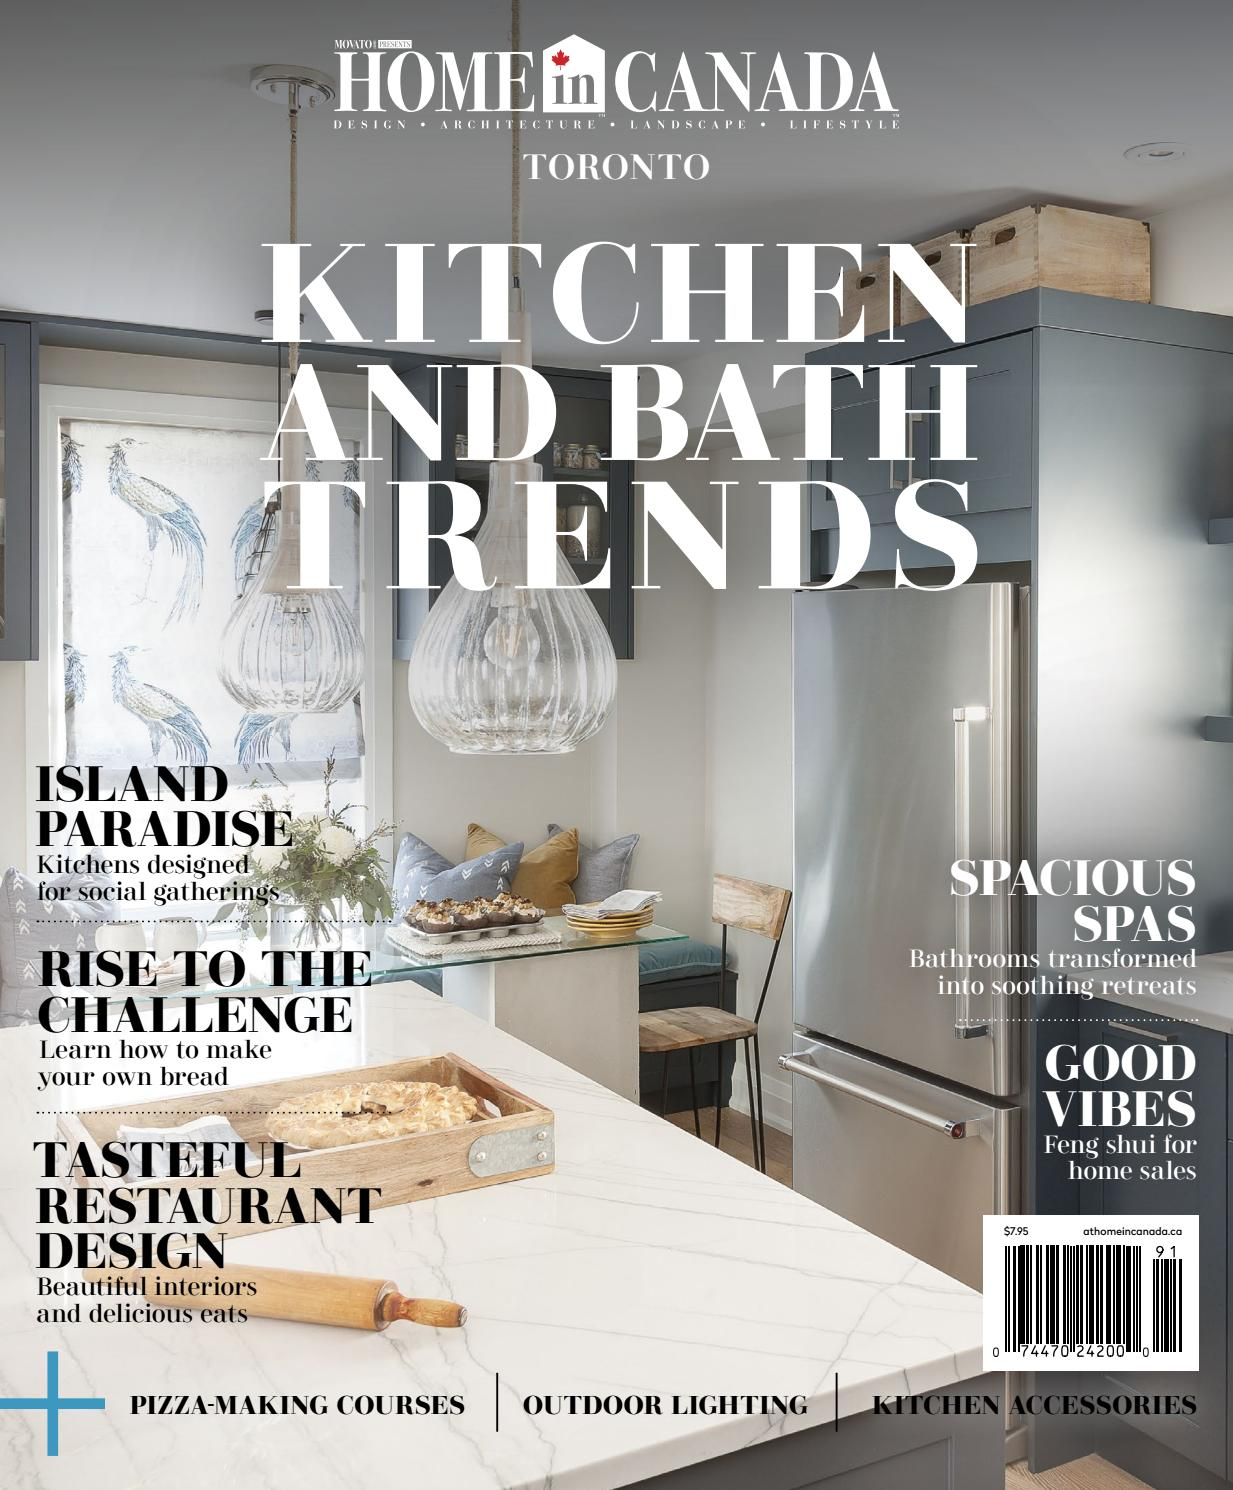 Home in canada toronto kitchen and bath trends 2019 by home in canada design ▫ architecture ▫ landscape ▫ lifestyle issuu